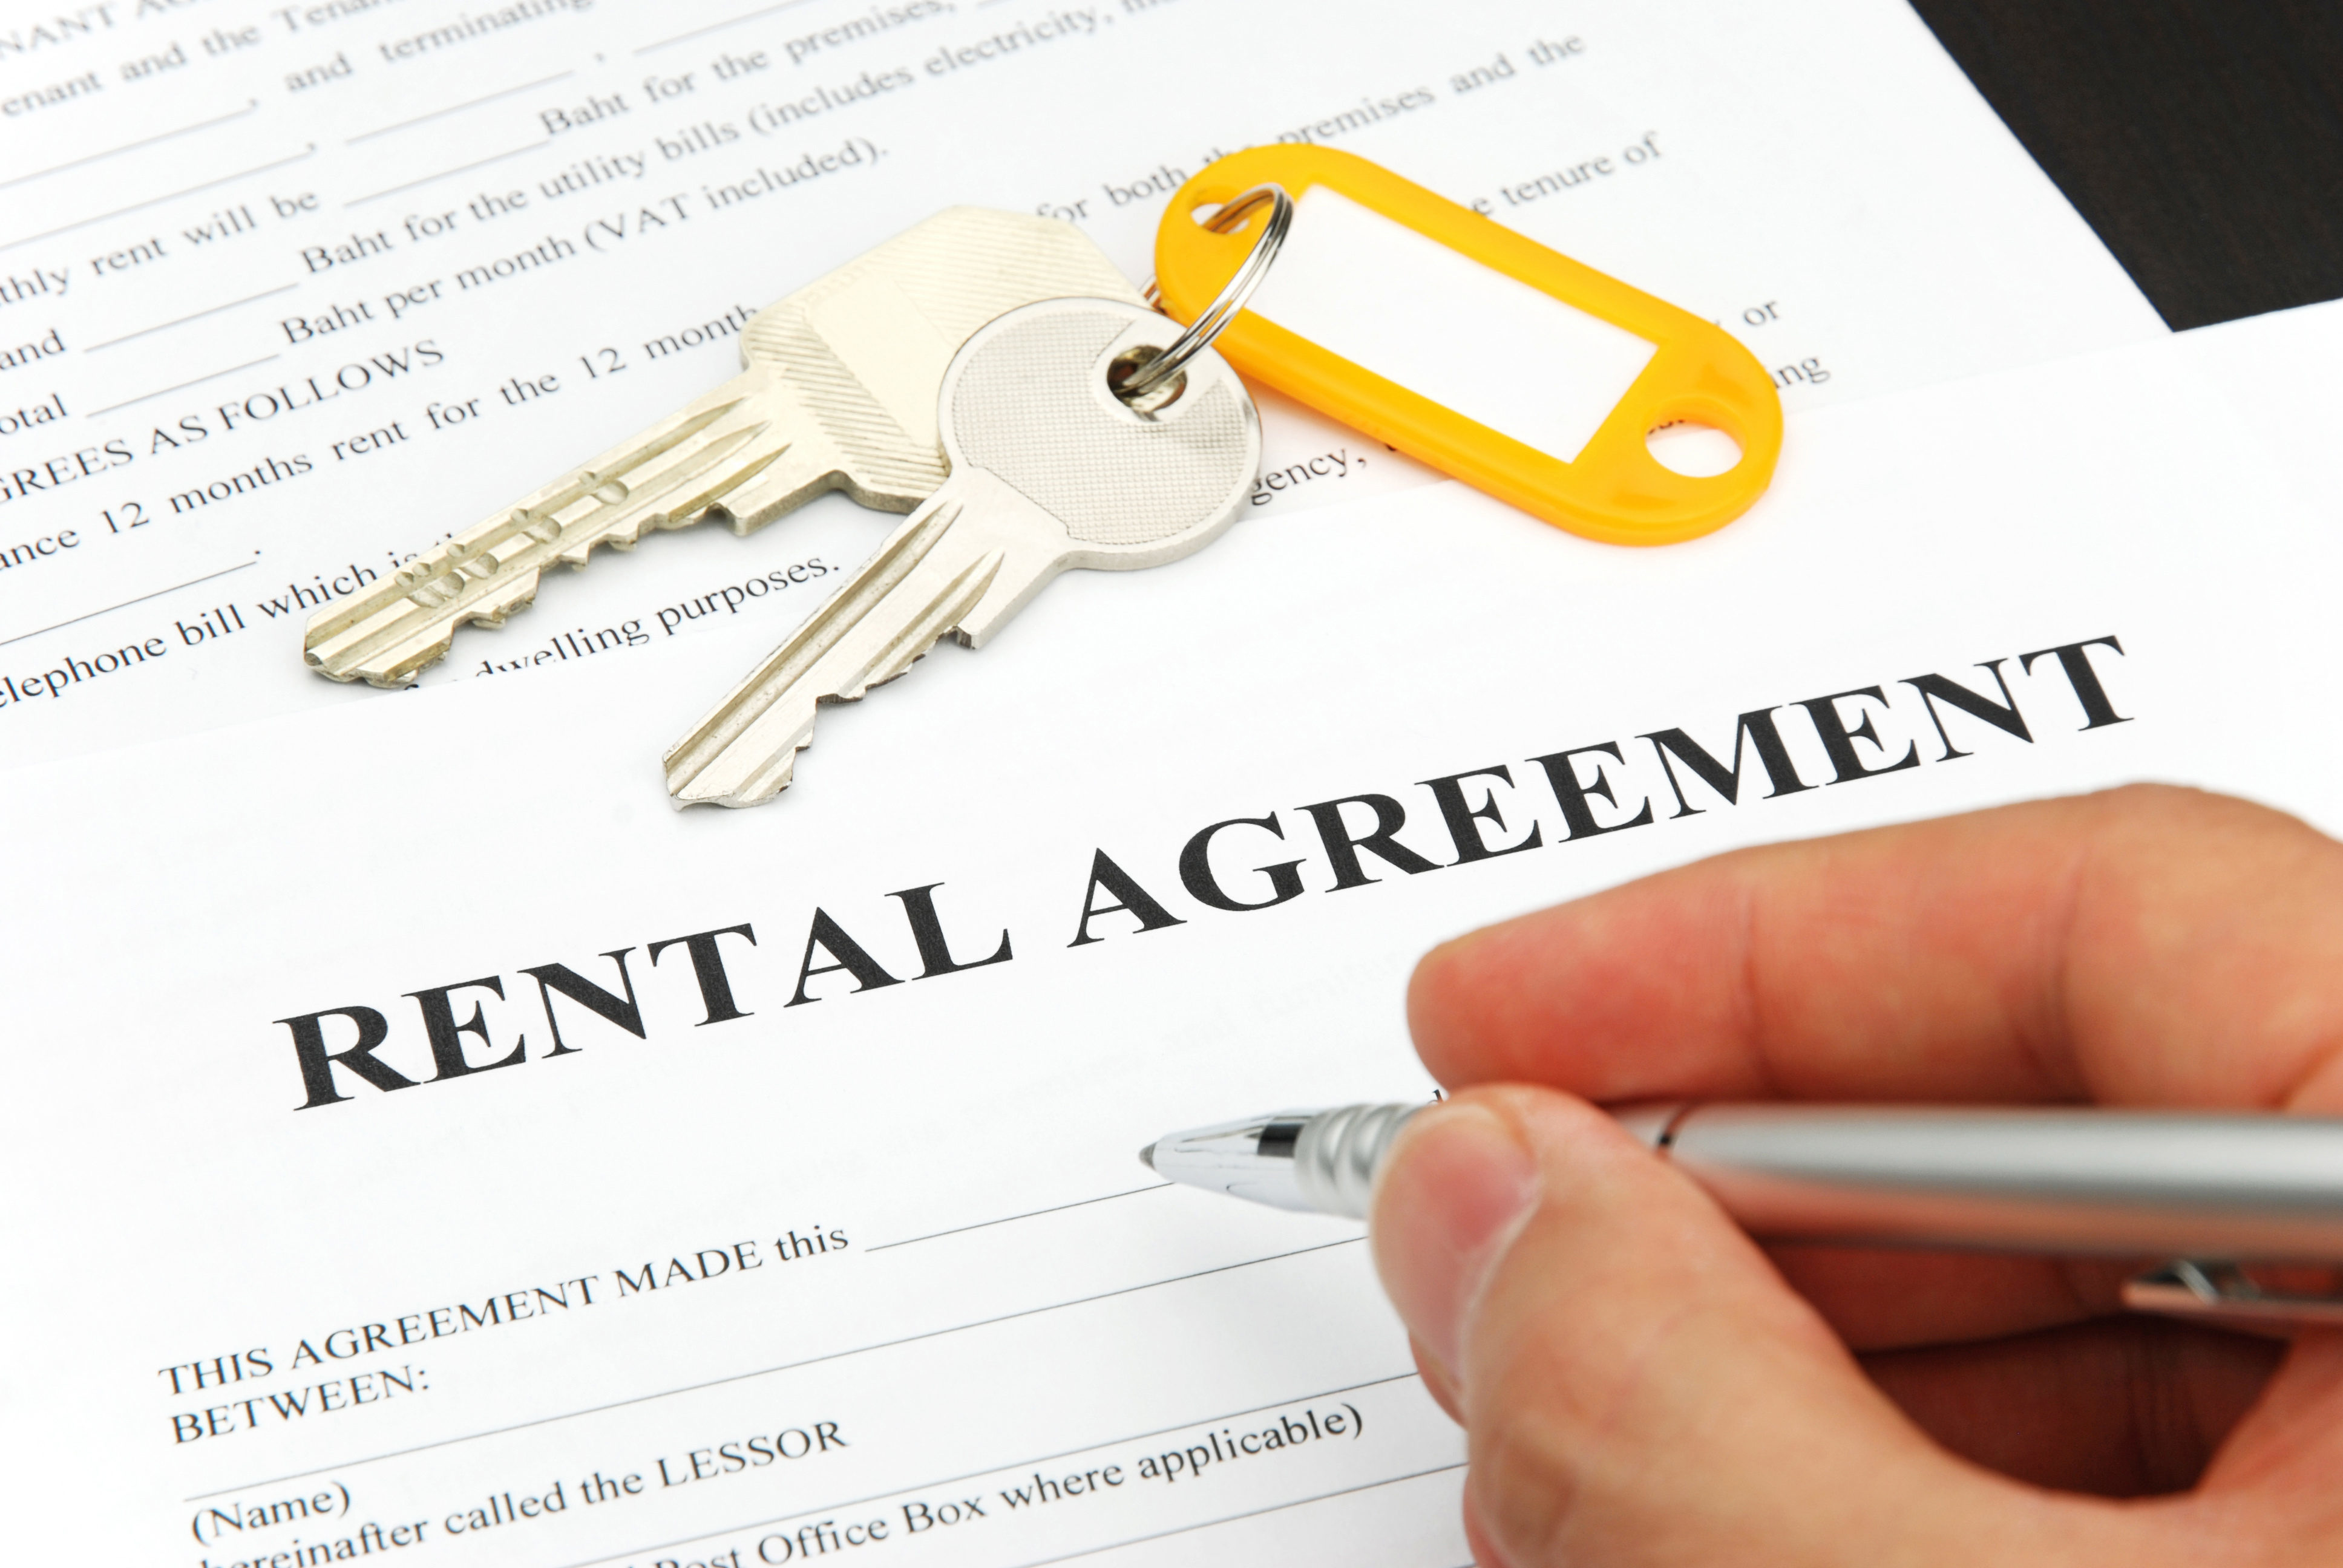 https://www.investorwize.com/wp-content/uploads/2016/09/rental_agreement_1.jpg